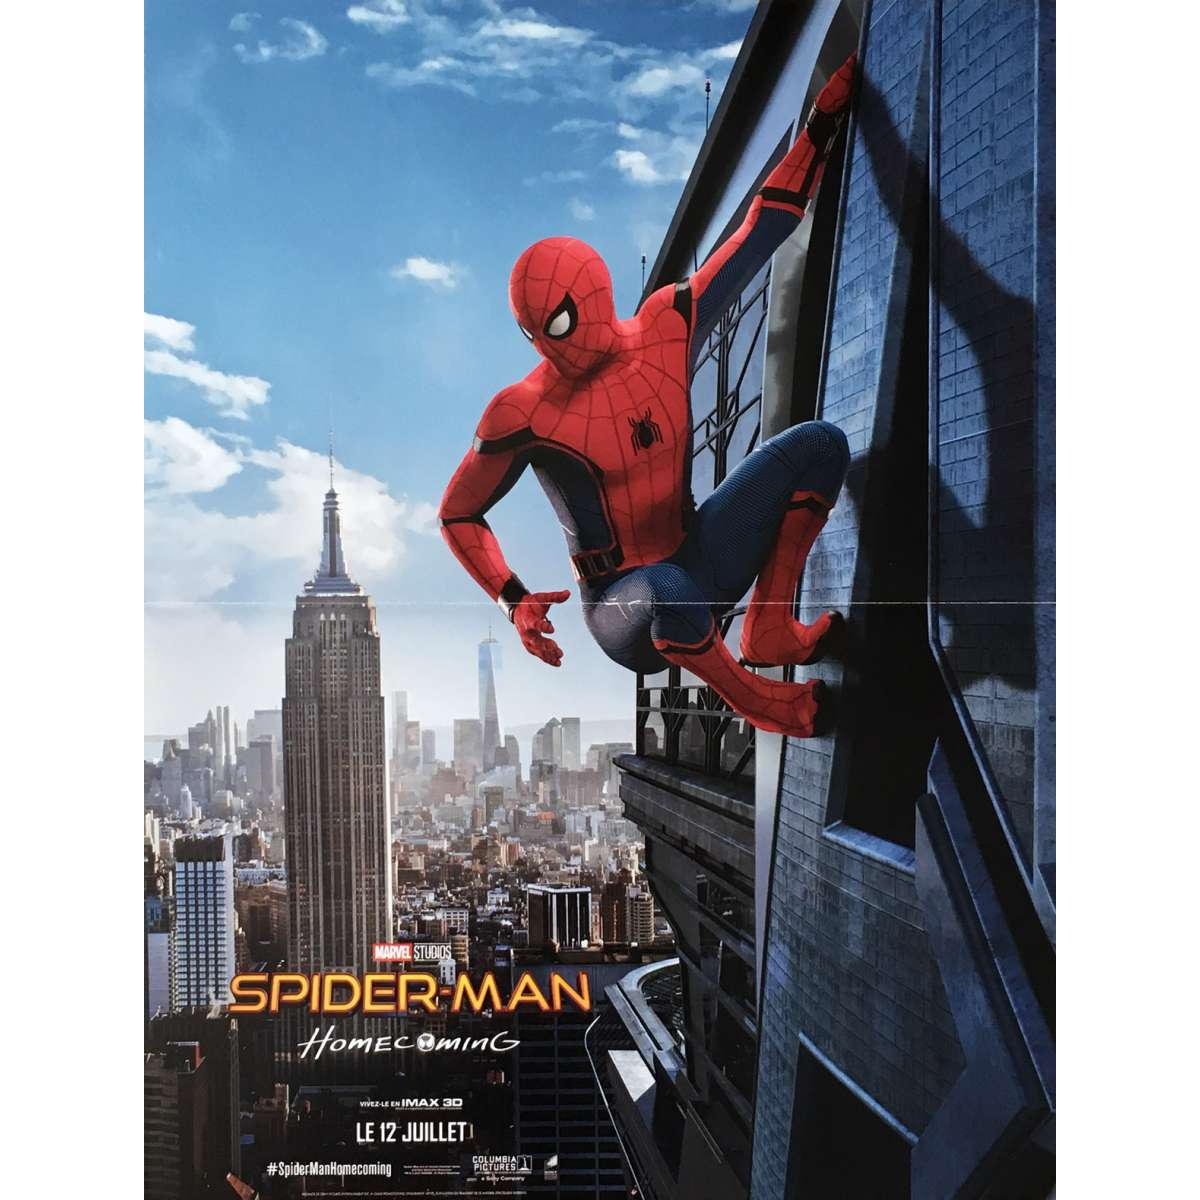 SPIDER-MAN HOMECOMING Movie Poster 15x21 in.